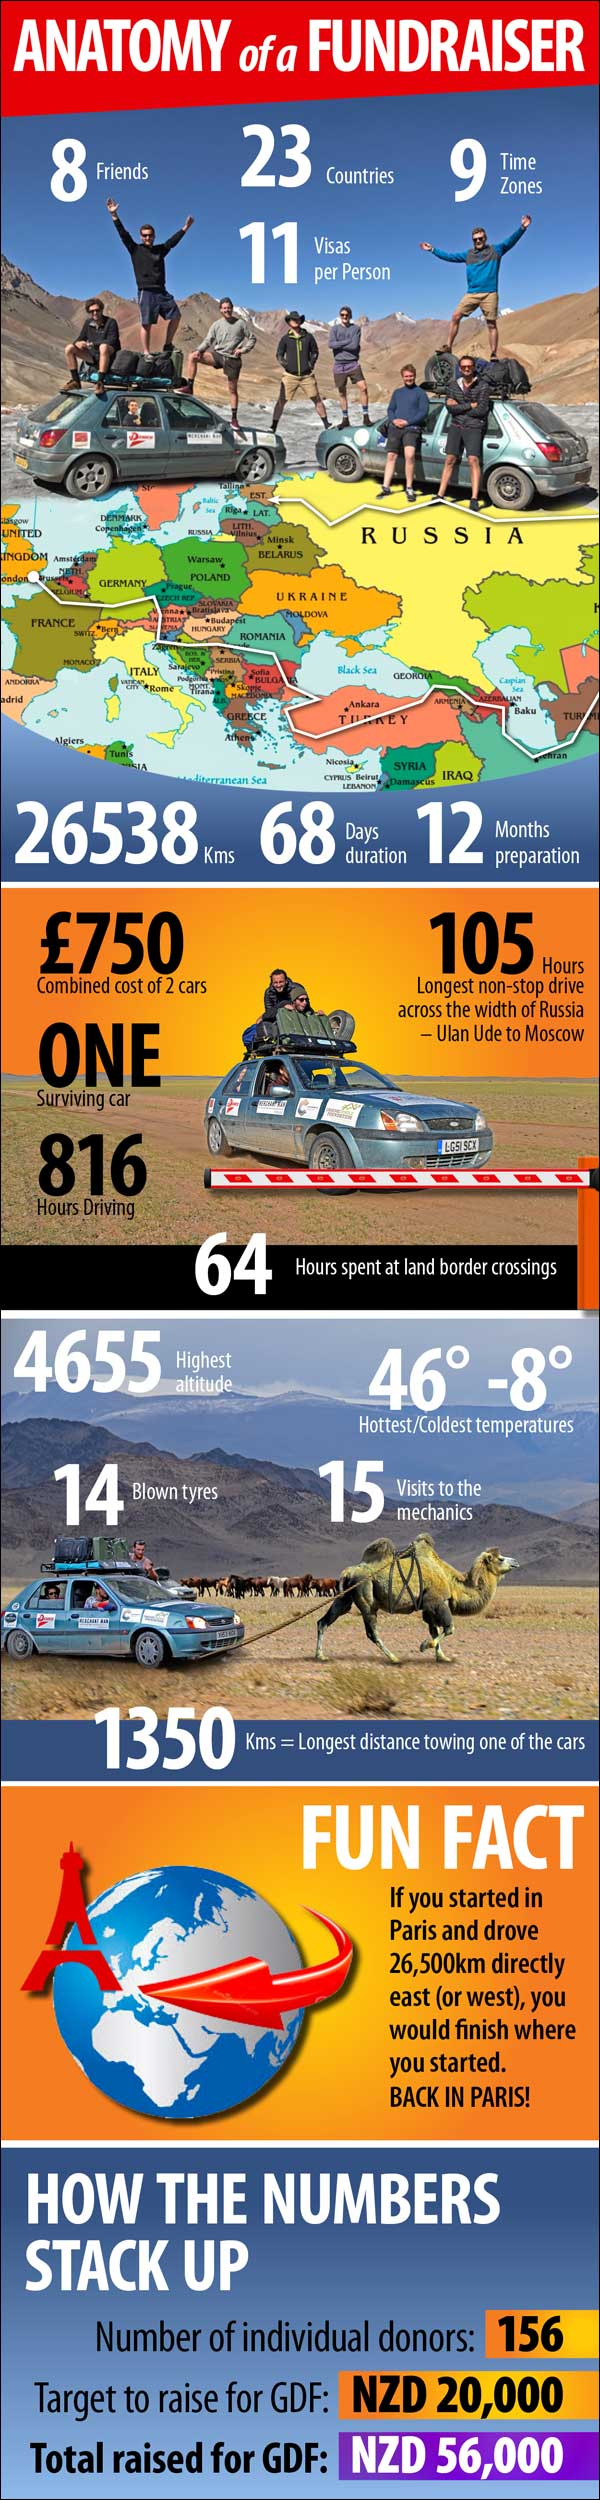 infographic 8 friends 26,000 kilometre charity drive adventure